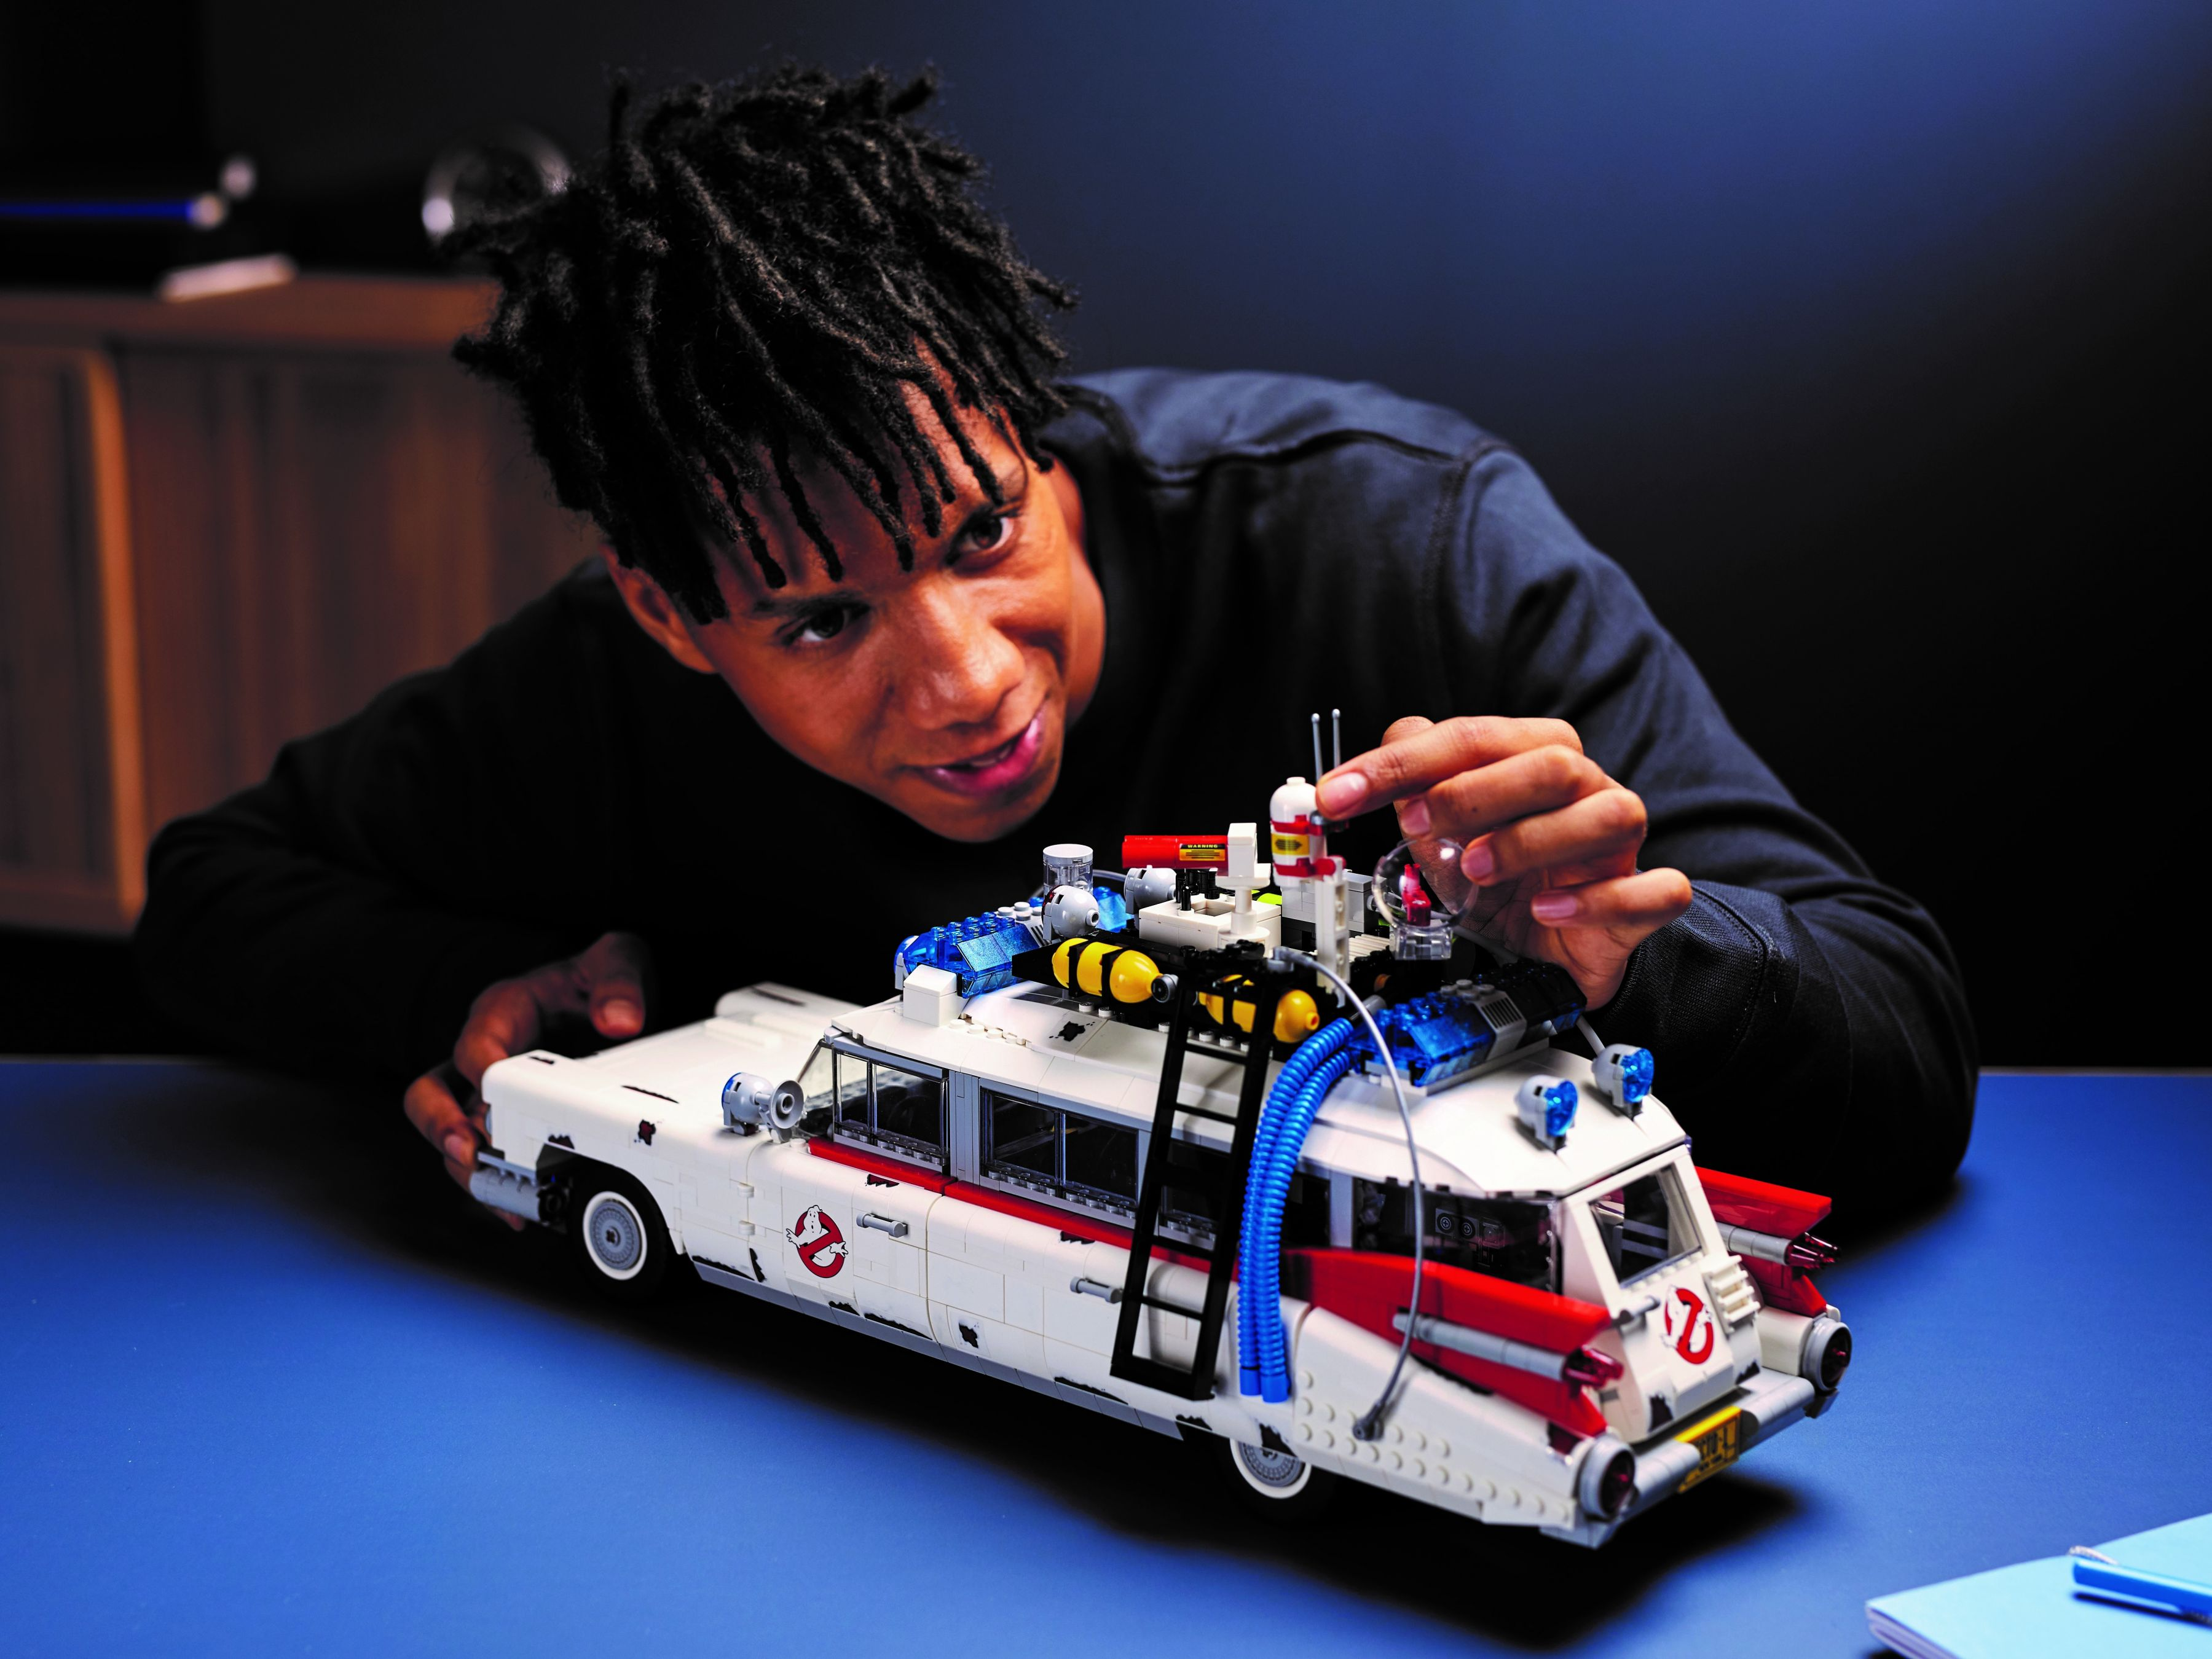 LEGO Advanced Models 10274 Ghostbusters™ ECTO-1 LEGO_10274_alt19.jpg